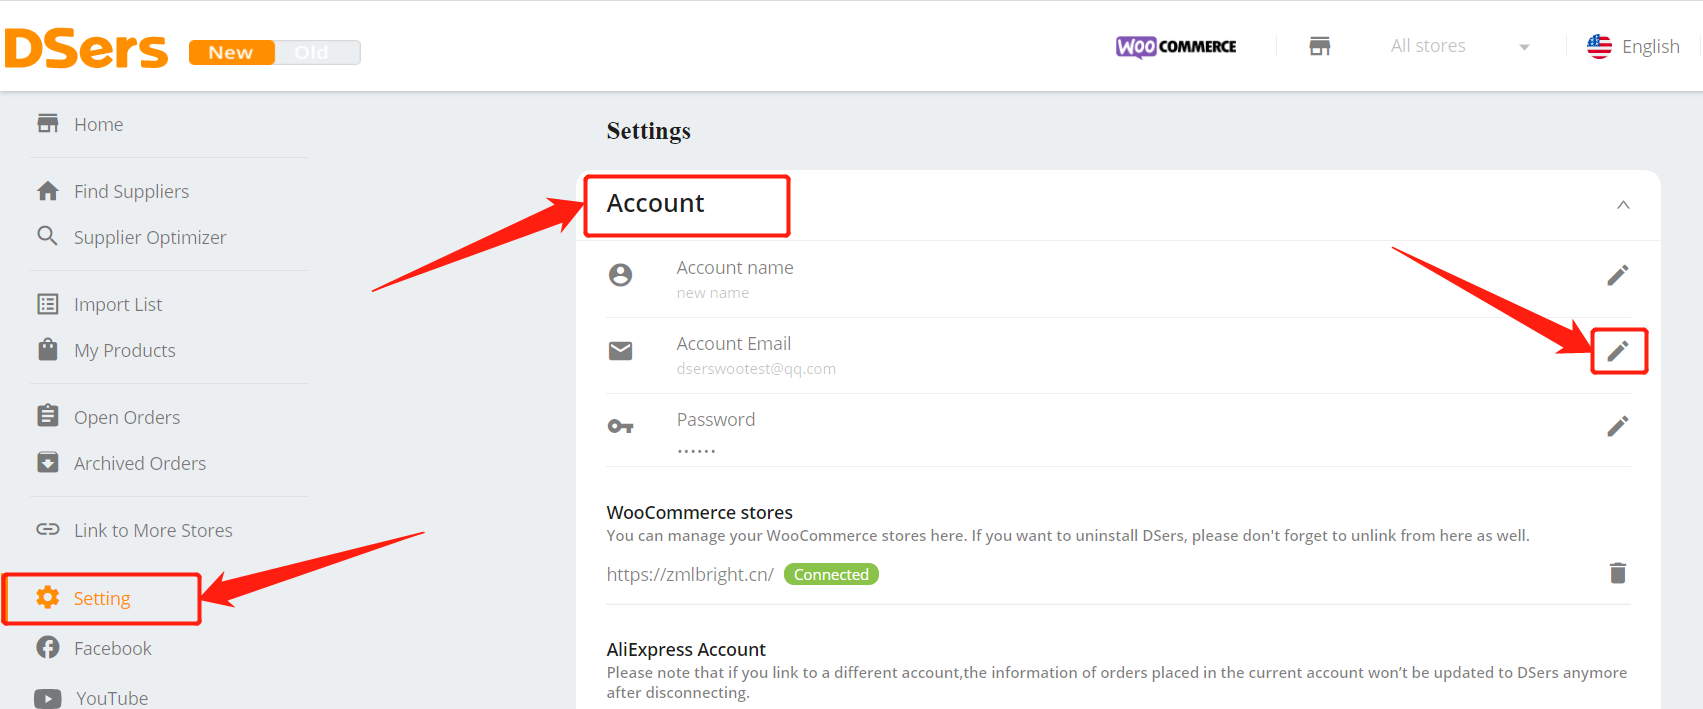 Change login email - Account Email - DSers